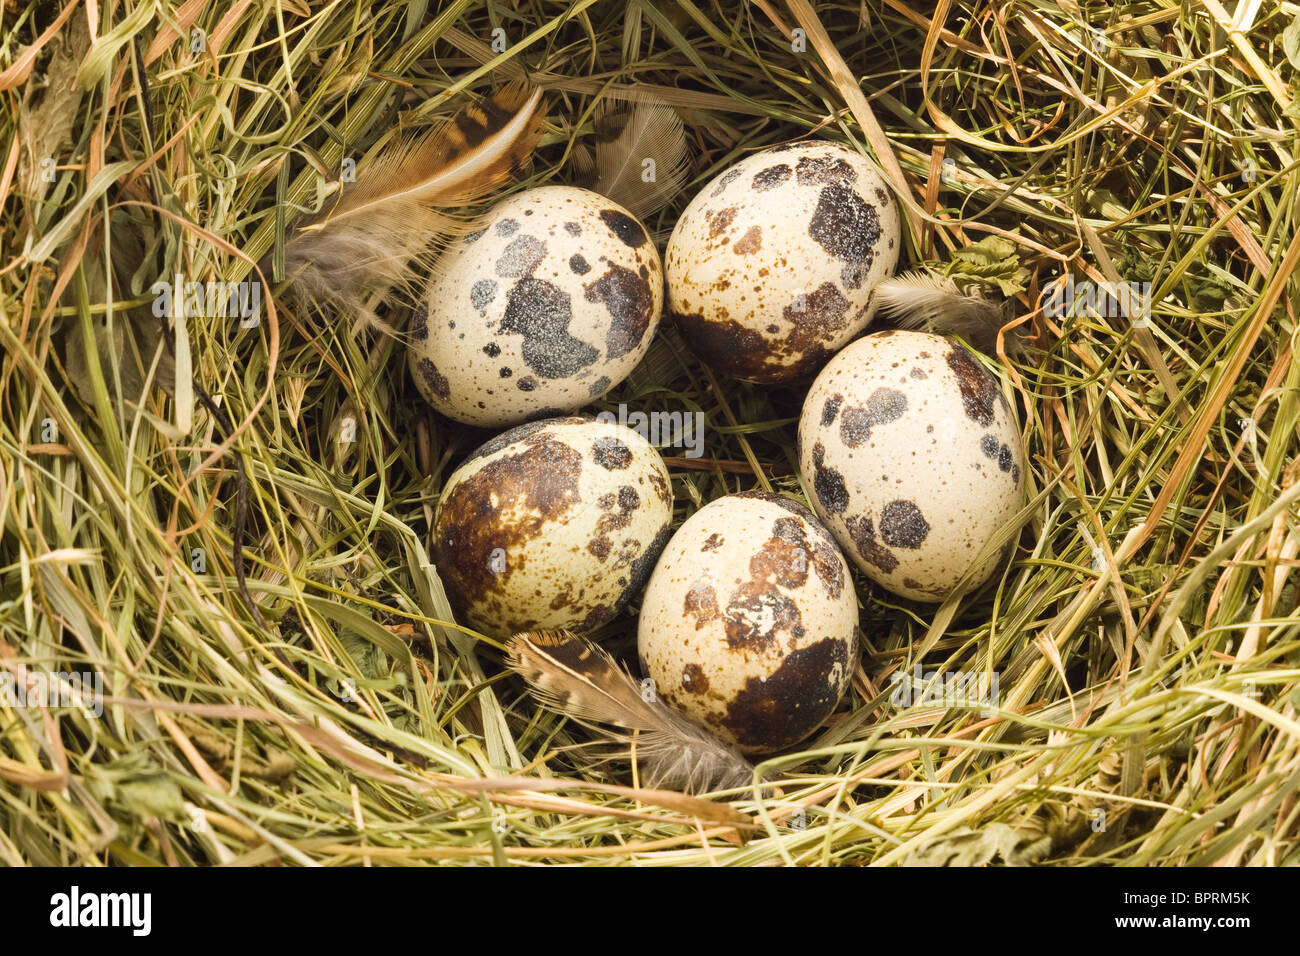 Close up view of the quail nest - Stock Image